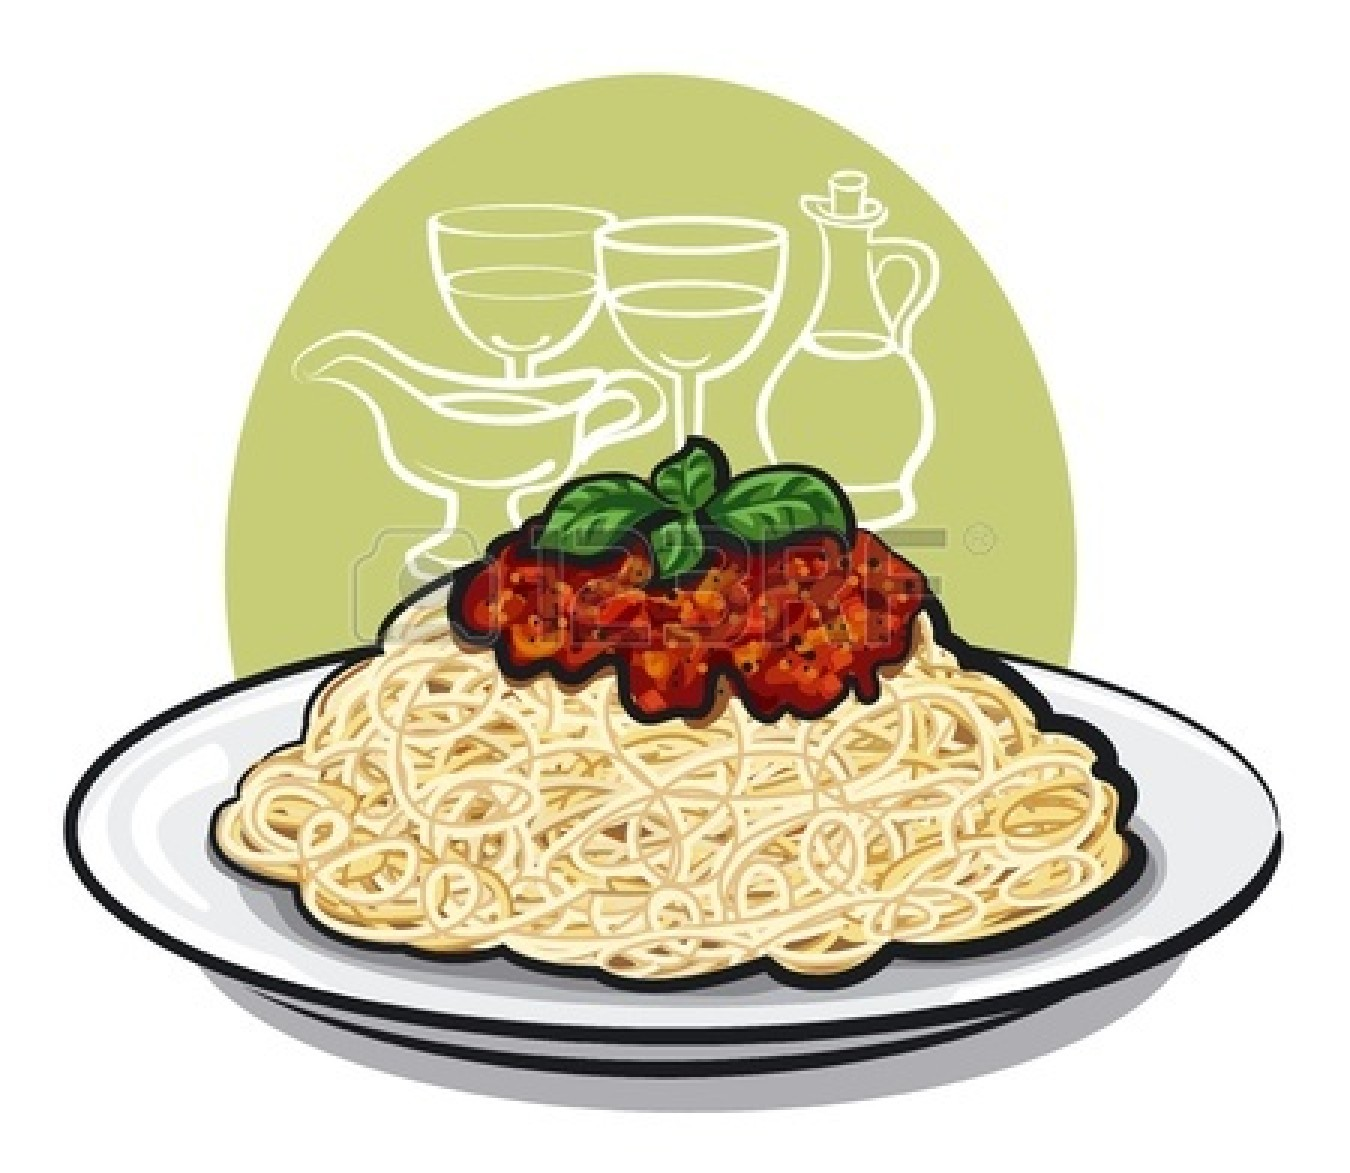 Pasta bowl clipart graphic transparent library Bowl Of Pasta Clipart | Clipart Panda - Free Clipart Images graphic transparent library